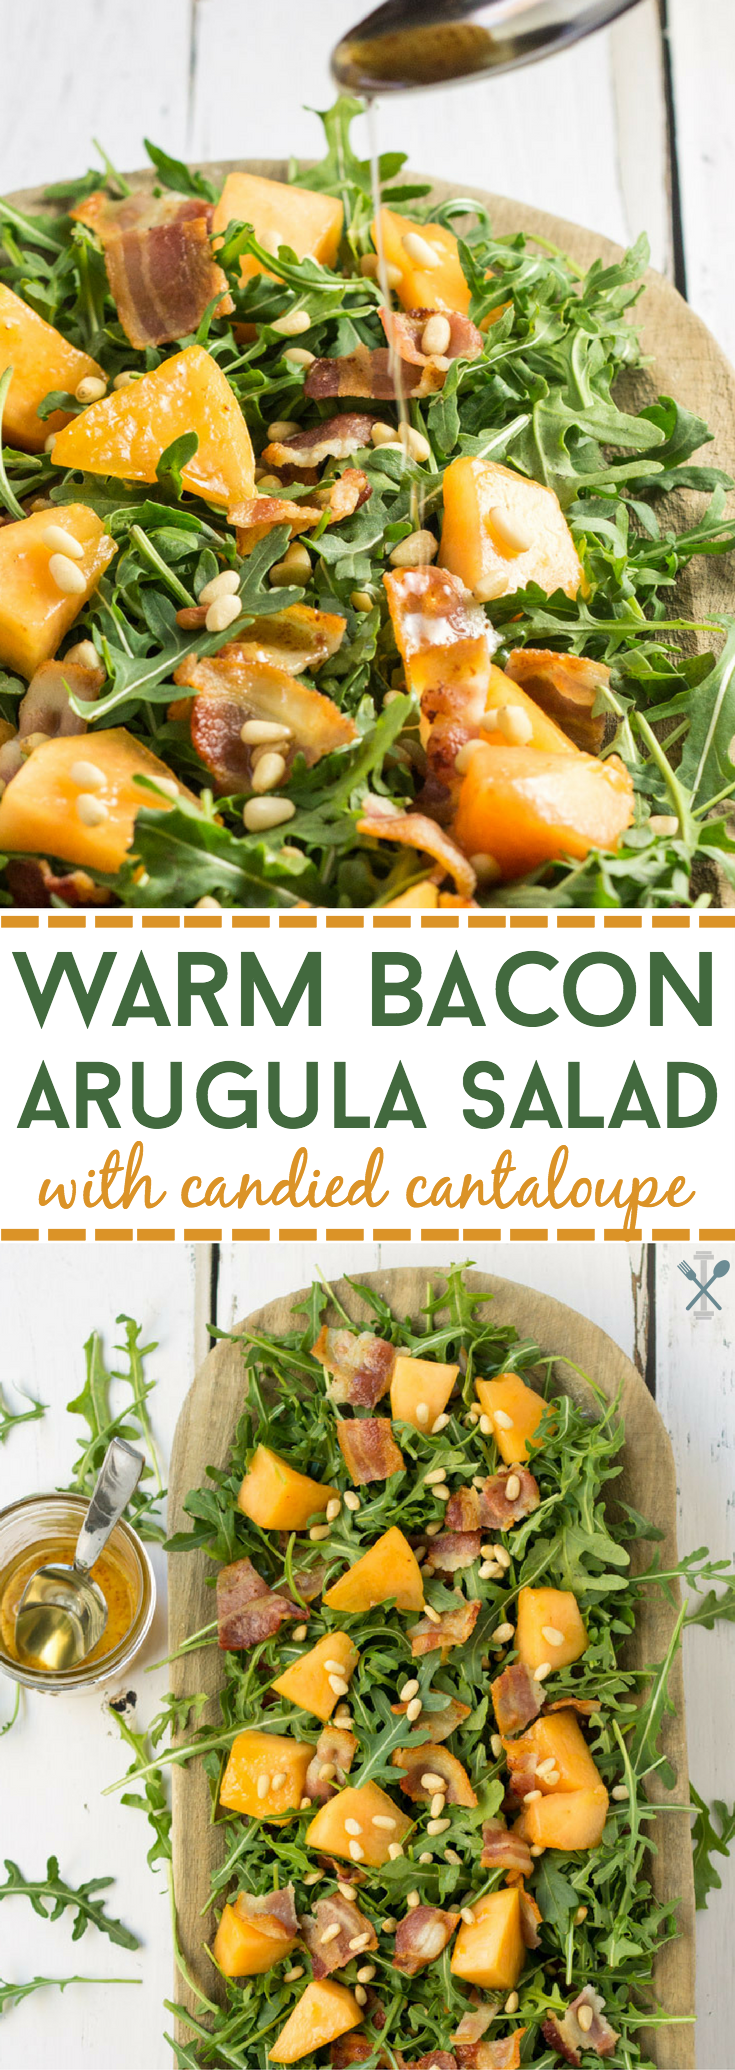 THE BEST bacon salad - paleo and made with all real-food ingredients. This arugula salad is packed with crispy bacon, honey glazed cantaloupe, and crunchy toasted pine nuts. And made in under 20 minutes!